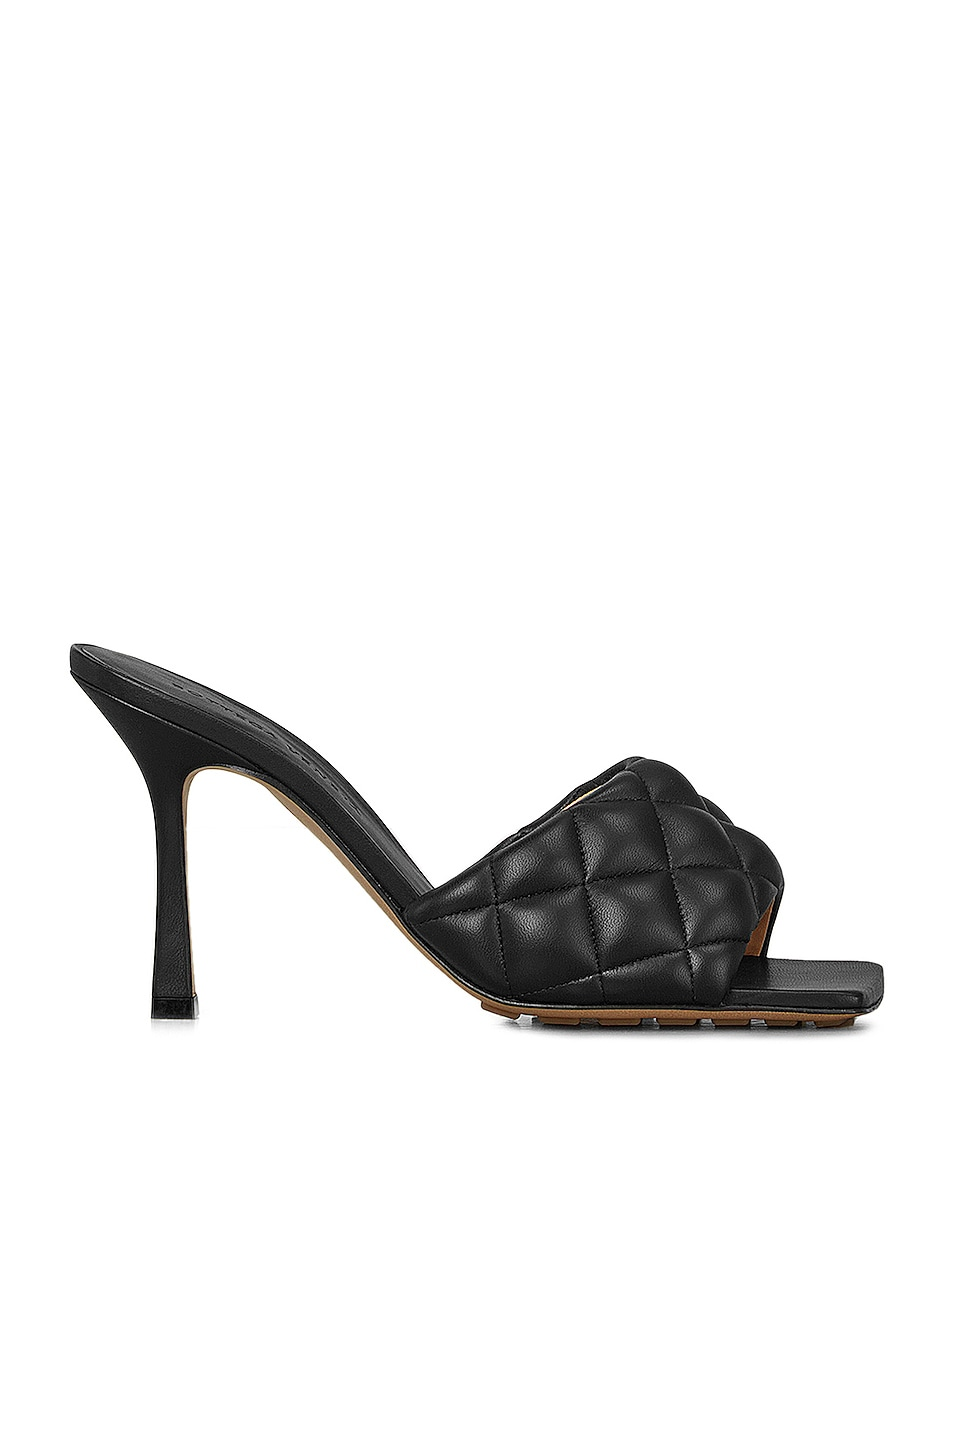 Image 1 of Bottega Veneta Leather Quilted Mules in Black